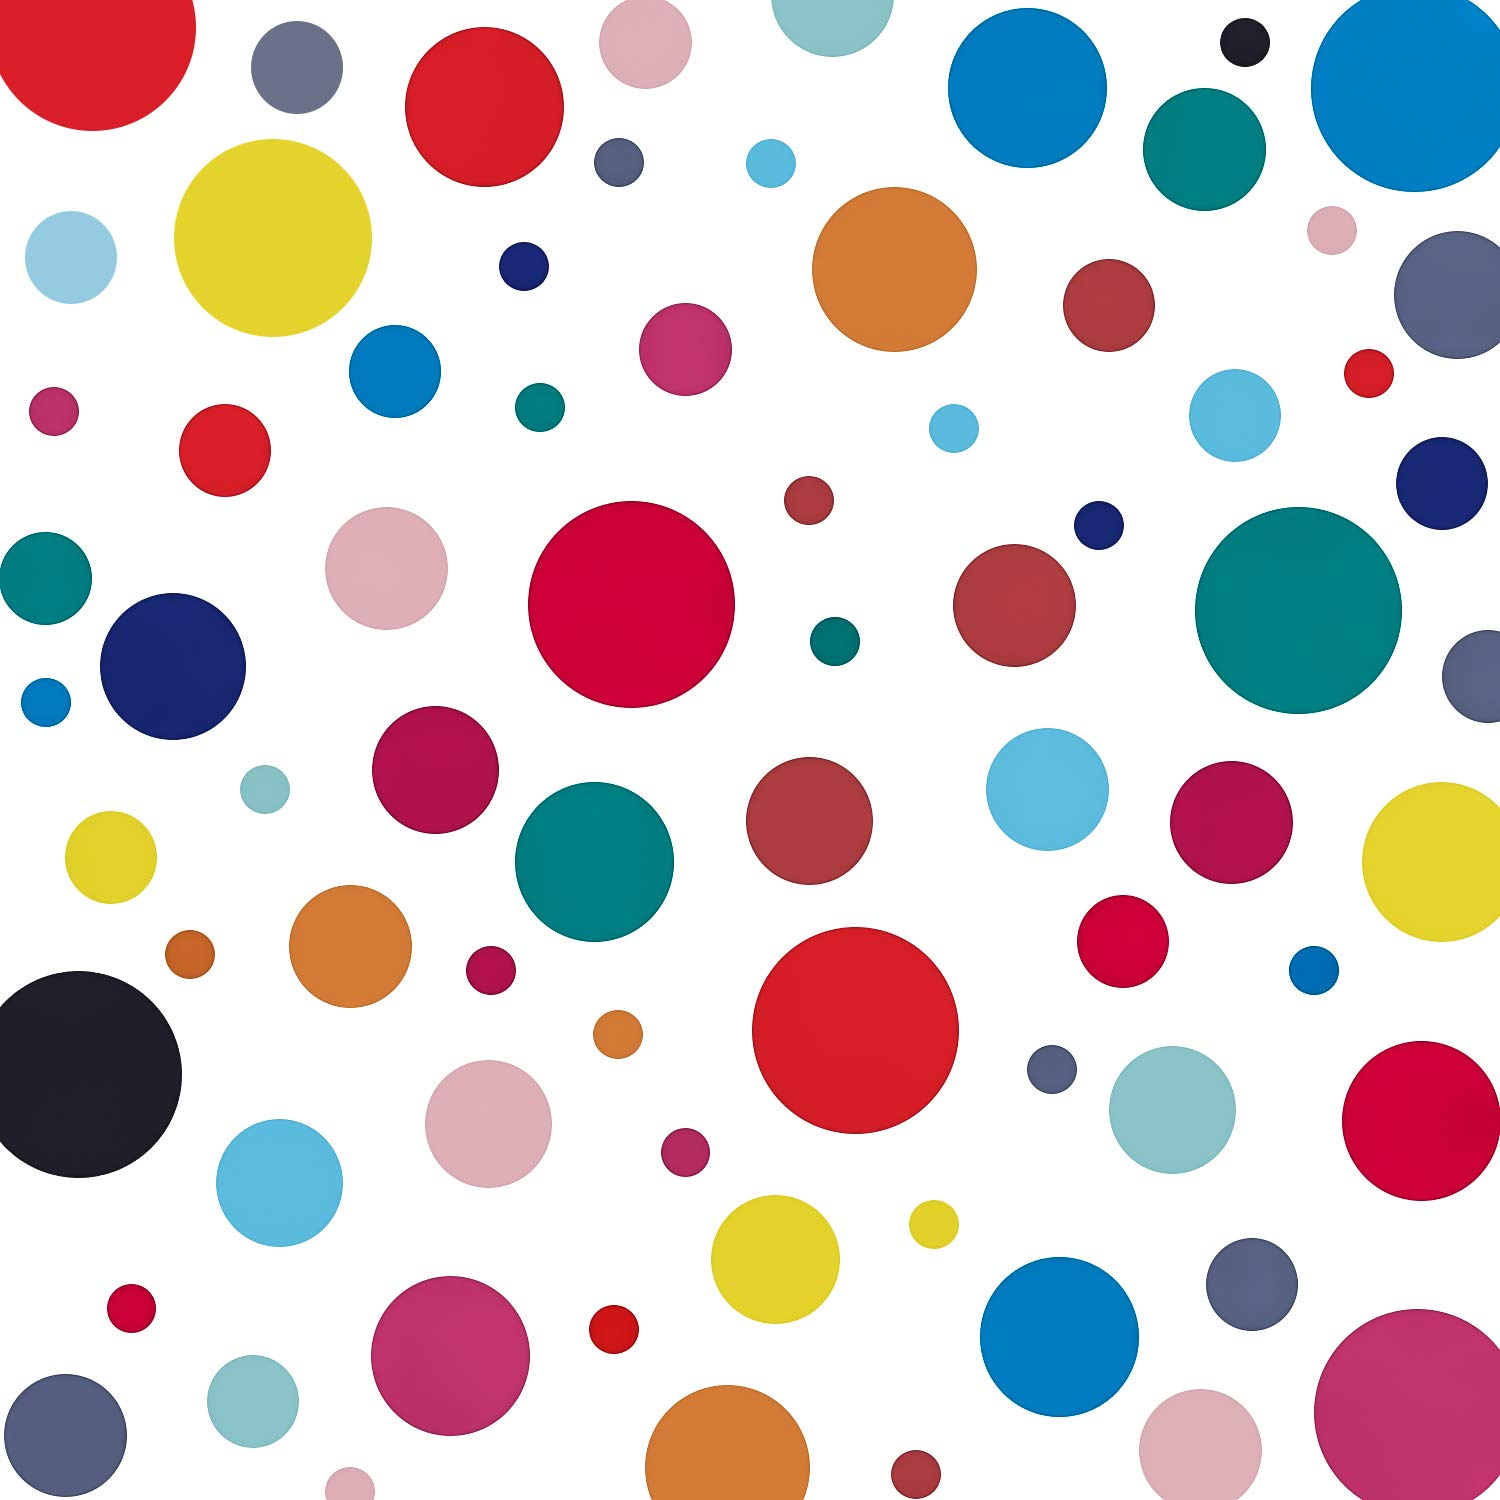 240 Decals Polka Dot Decor Rainbow Colors Polka Dot Wall Decor Circle Spot Wall Sticker Primary Colors Polka Dots Decals Kids Wall Decals Classroom Wall Decals Playroom Wall Decor